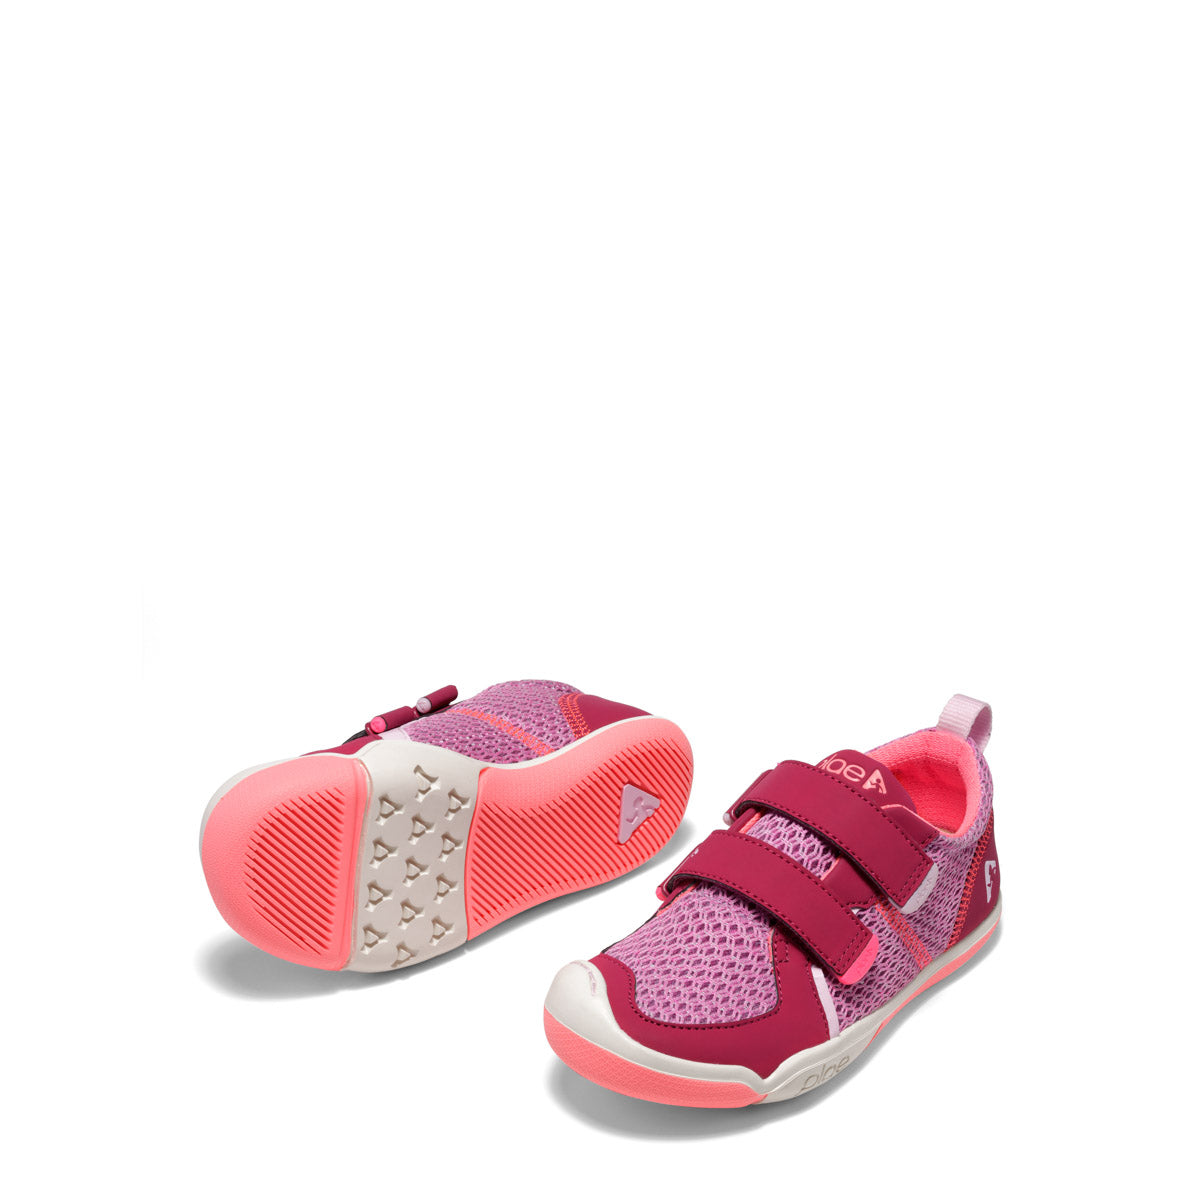 Plae TY H&L in Hibiscus Pink (Sizes 6-13.5)